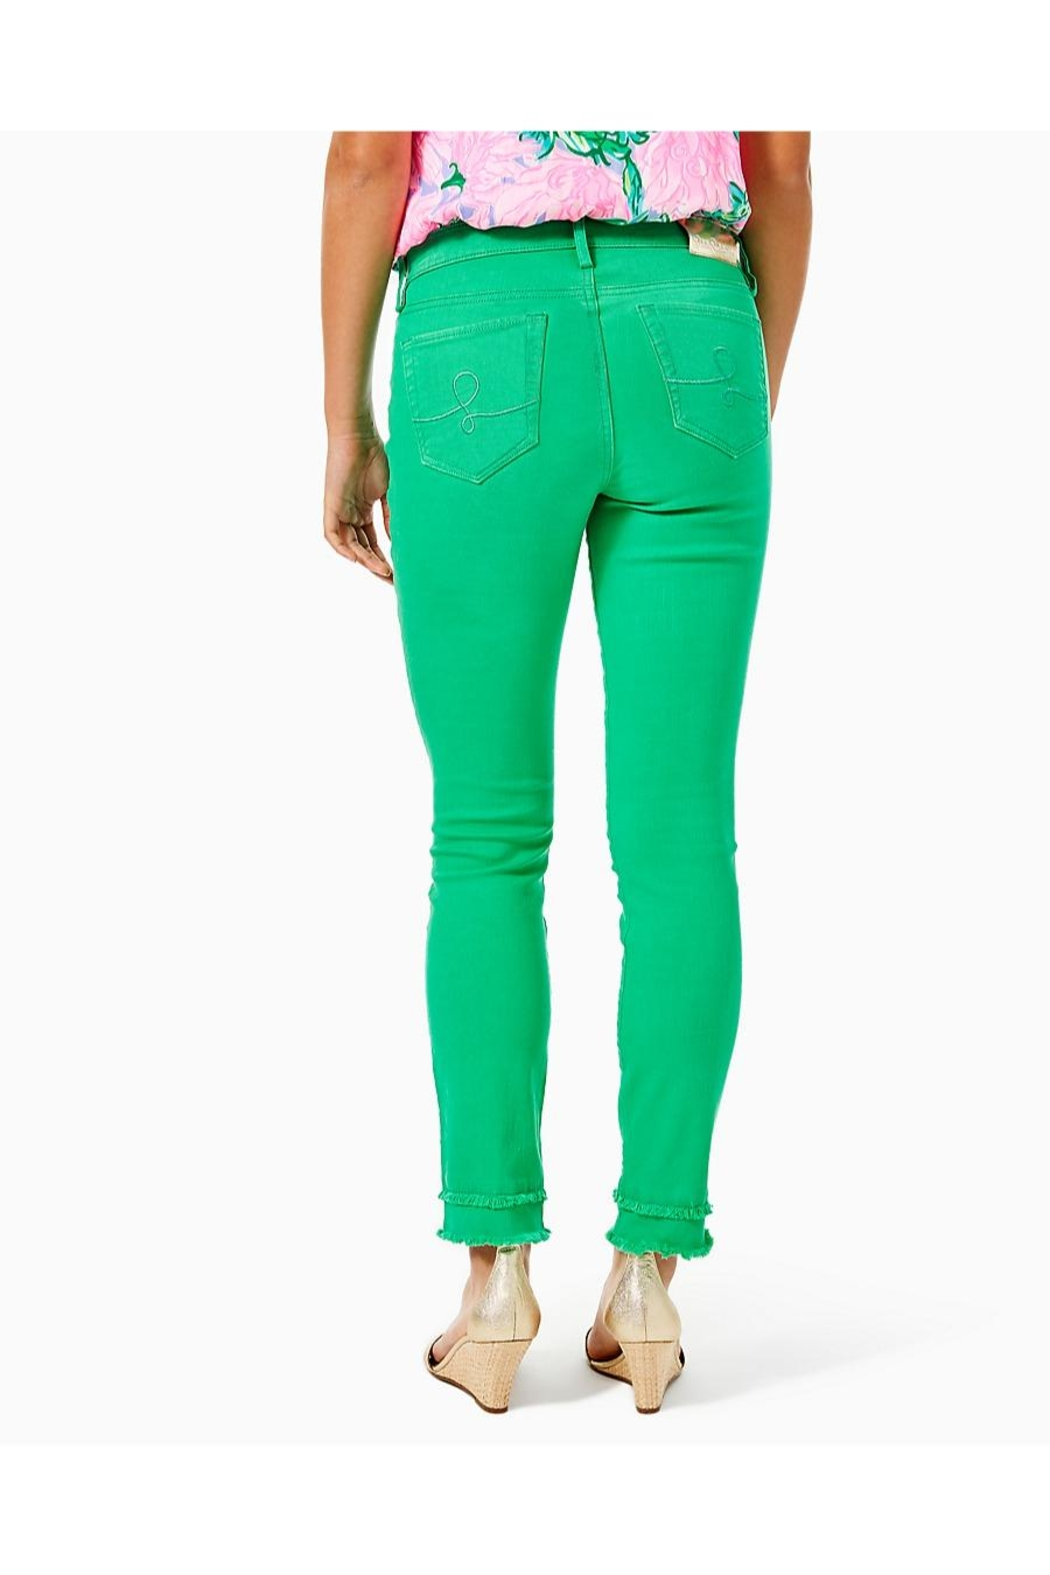 Lilly Pulitzer South Ocean Skinny-Jean - Front Full Image